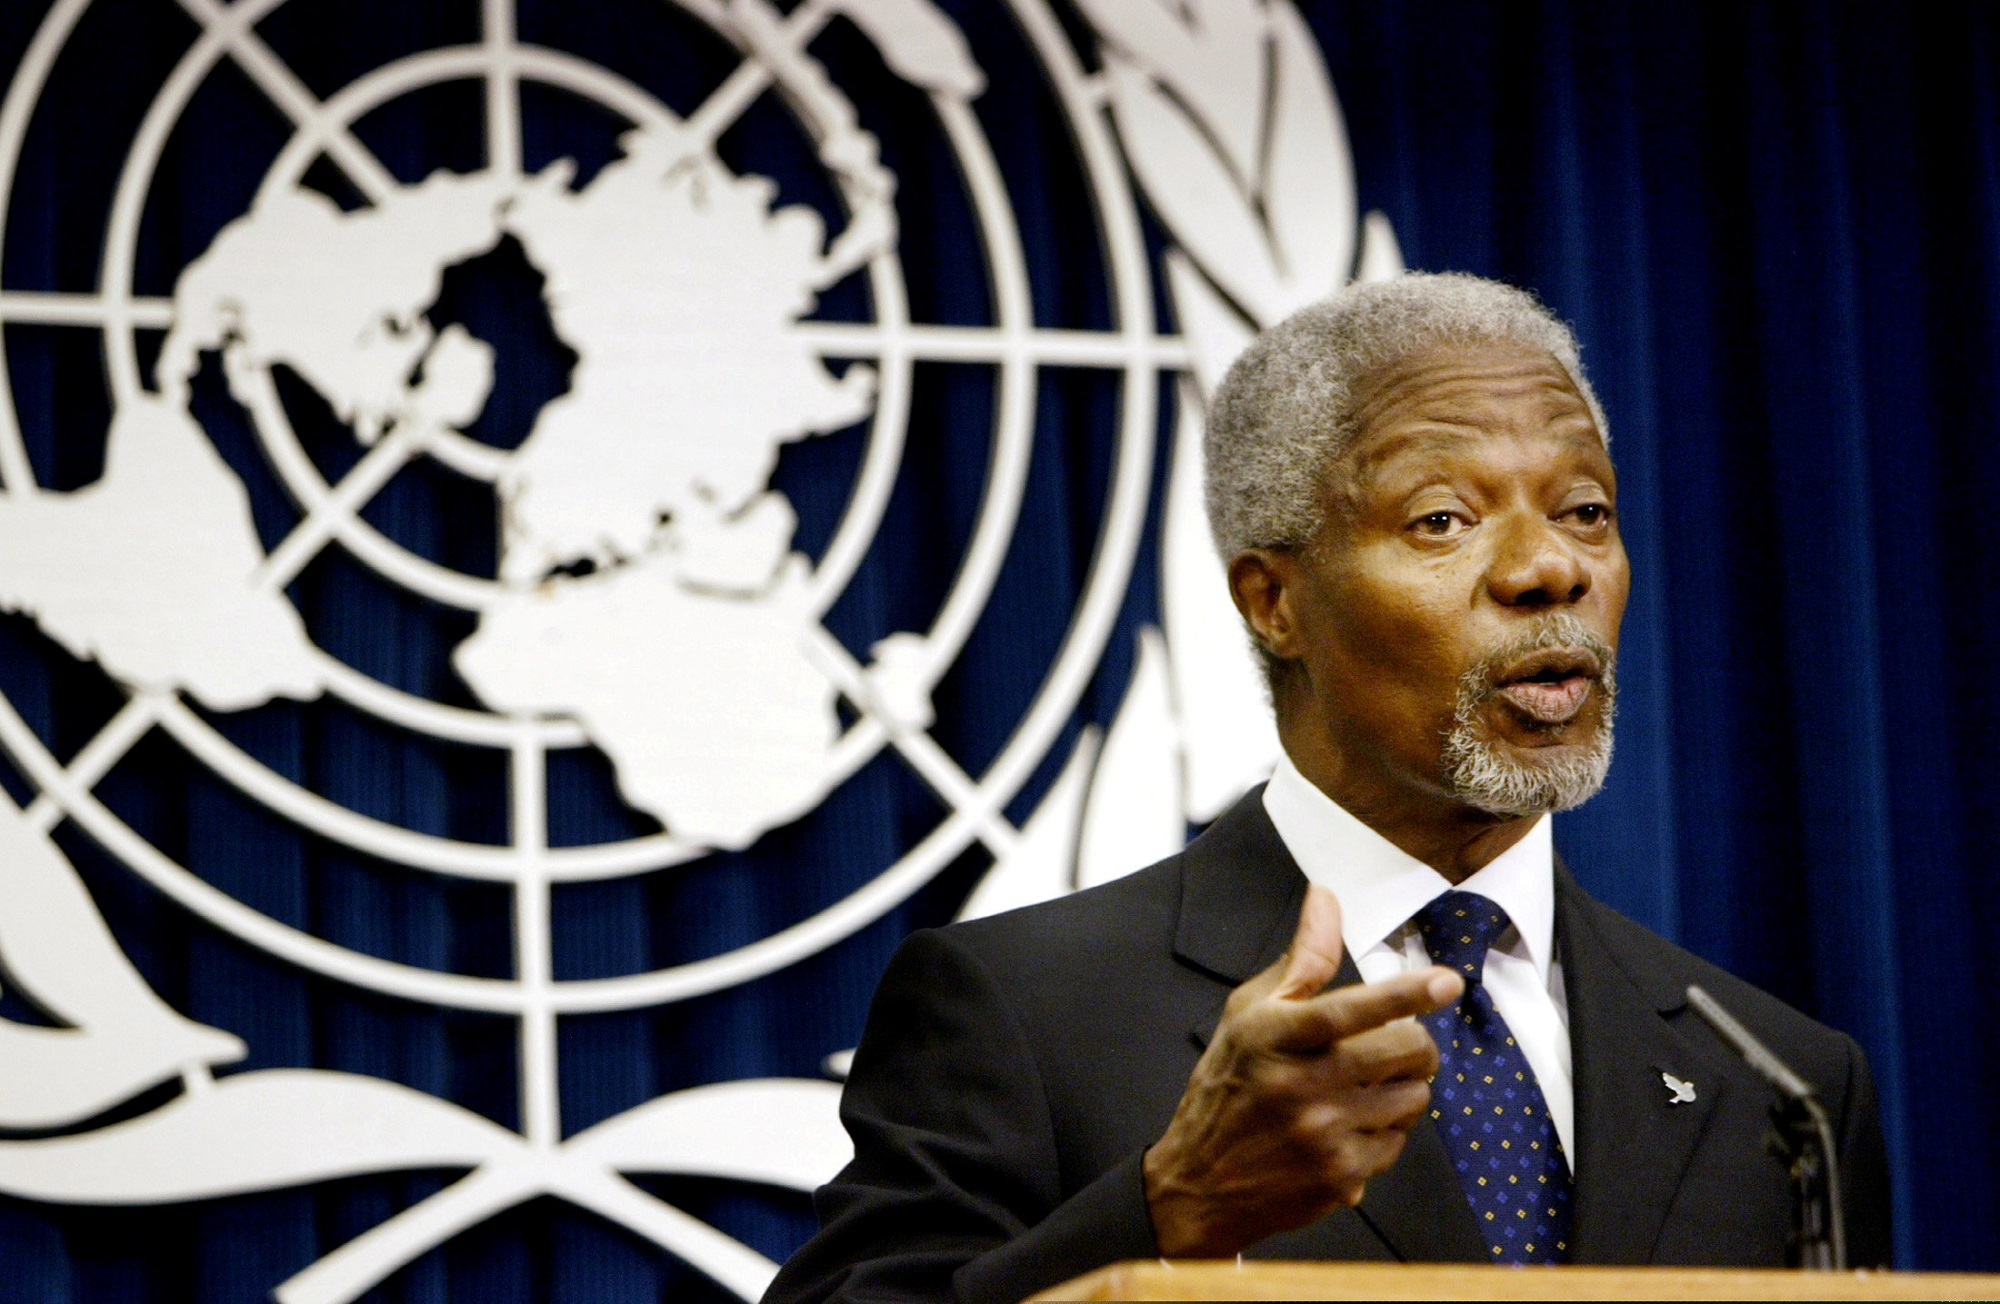 File: Kofi Annan served as the seventh UN chief for almost 10 years and was awarded the Nobel prize in 2001.